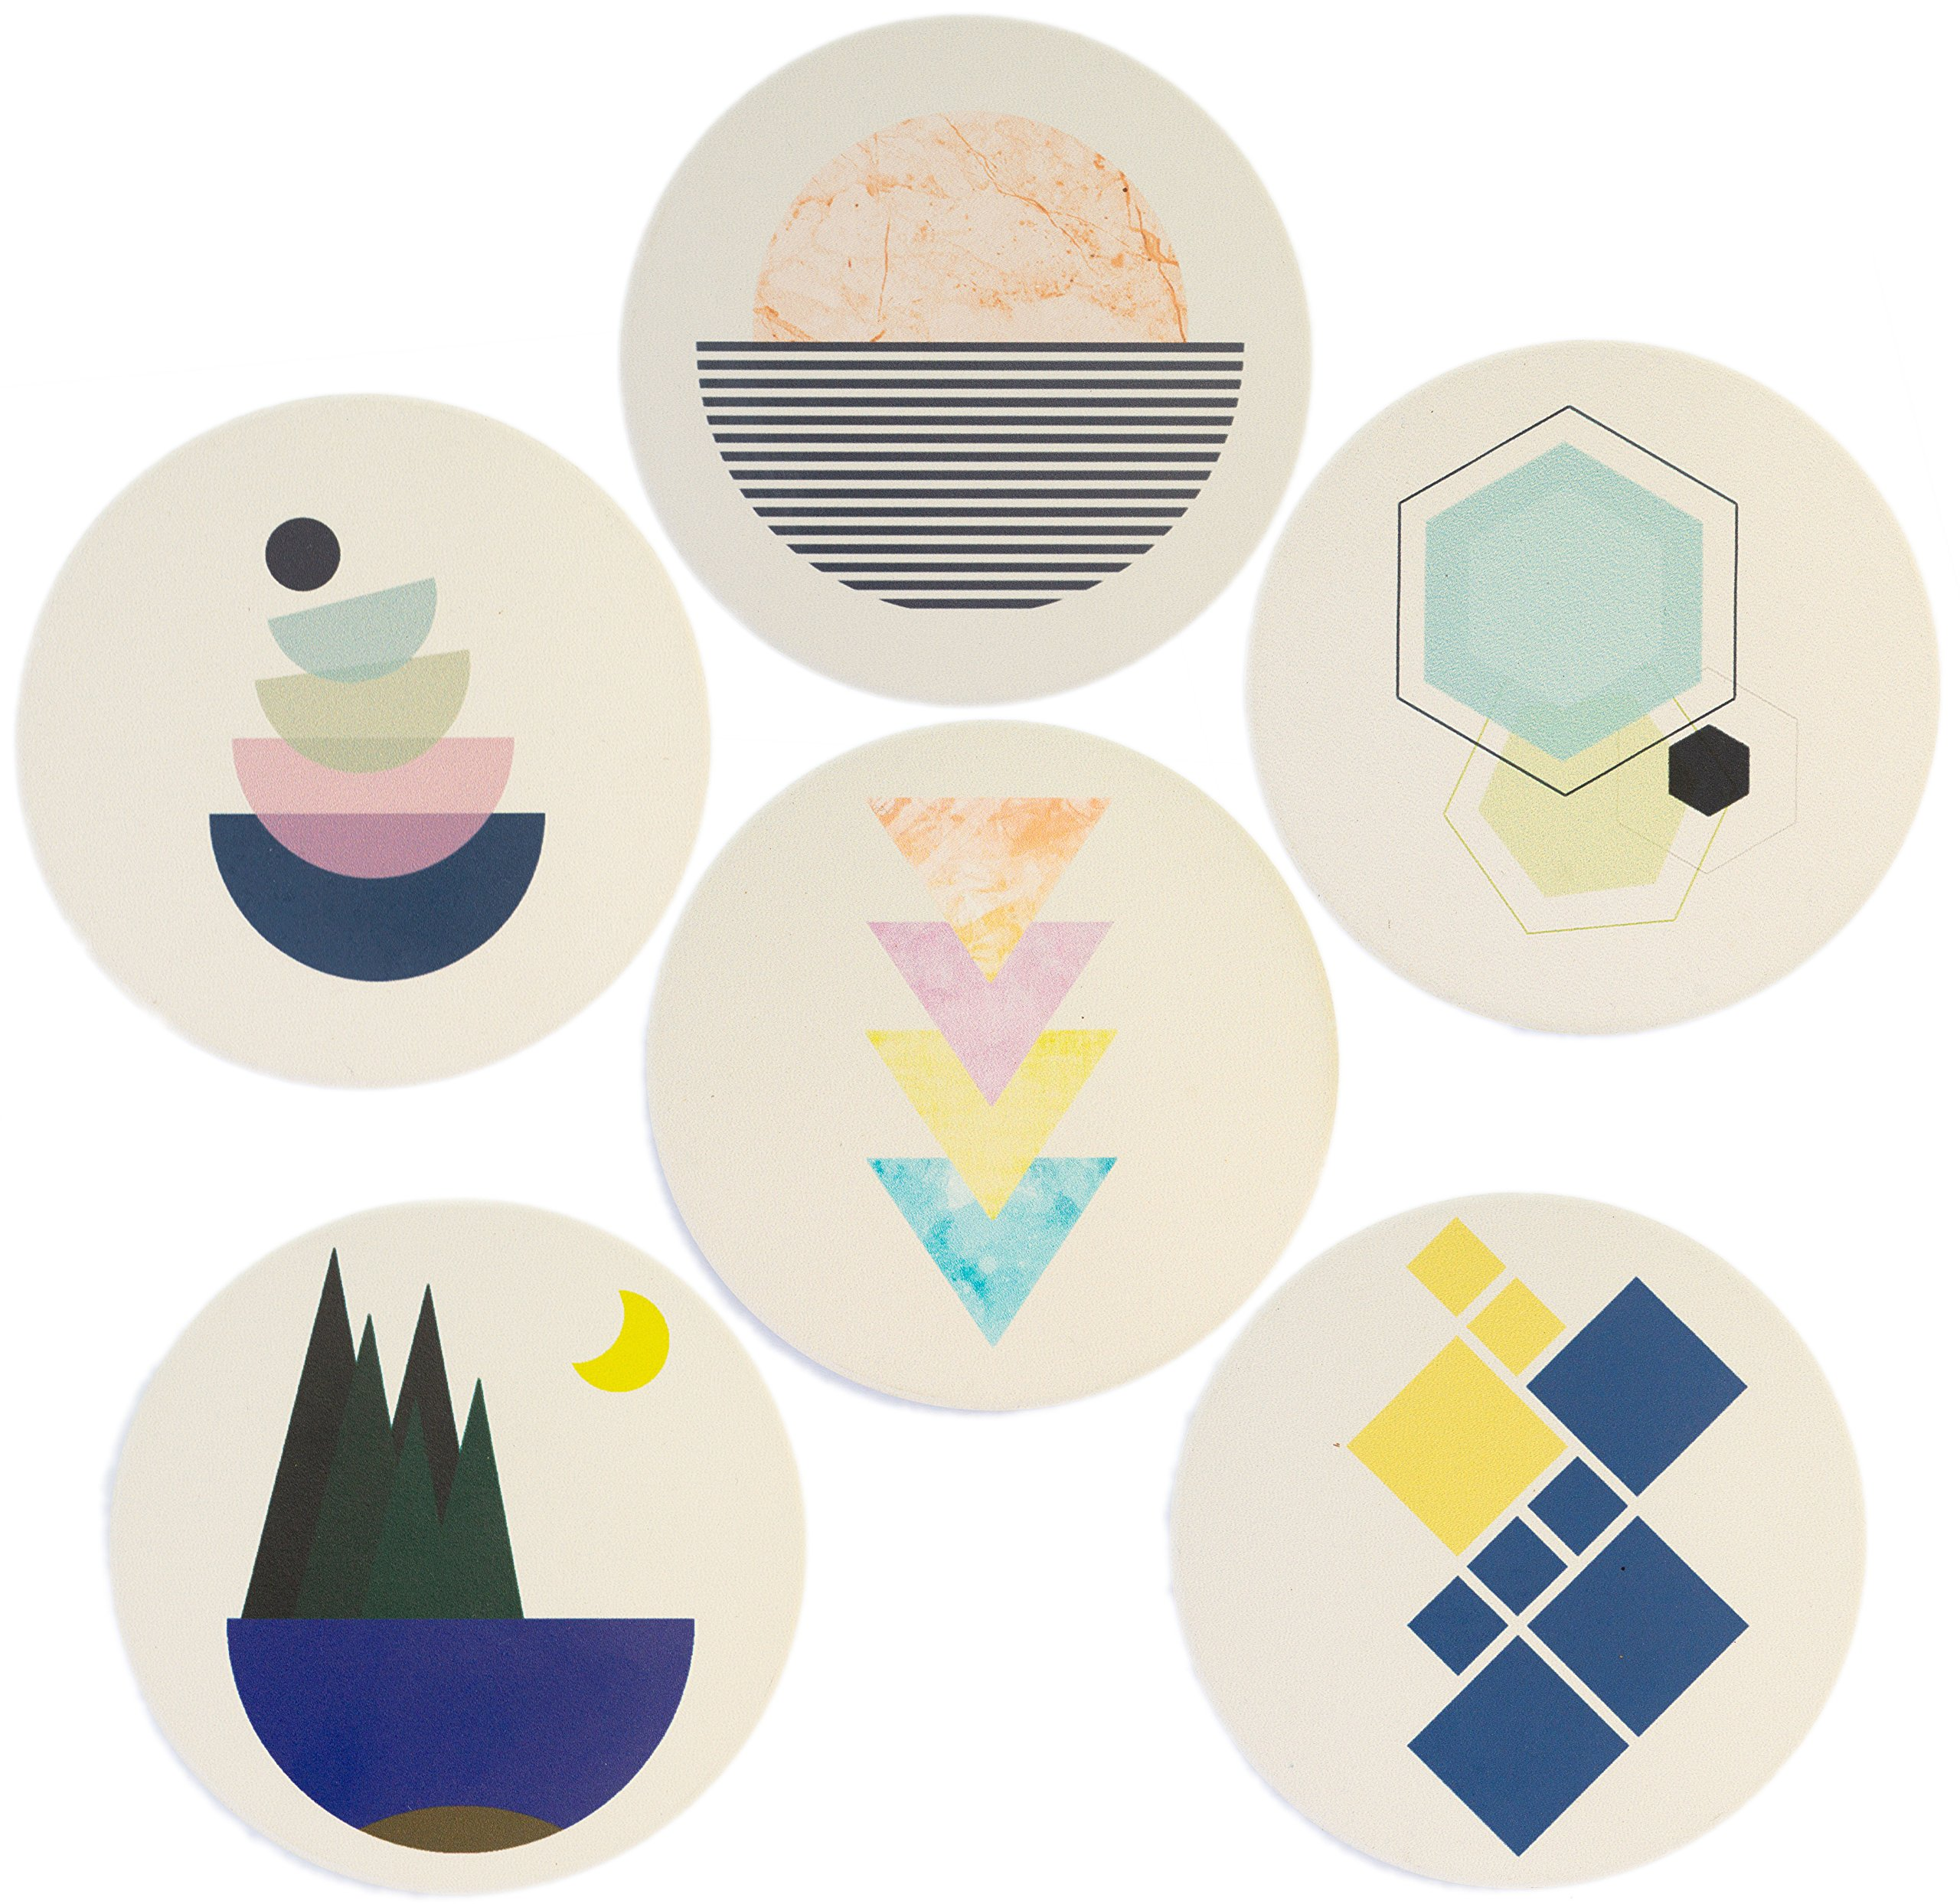 Gedo Modern Art Design Coasters – Complete Set of 6 Coasters – Elegant Design, Absorbent Stone, Perfect Size, Cork Bottom, Furniture Protection, a Must-have Gift!